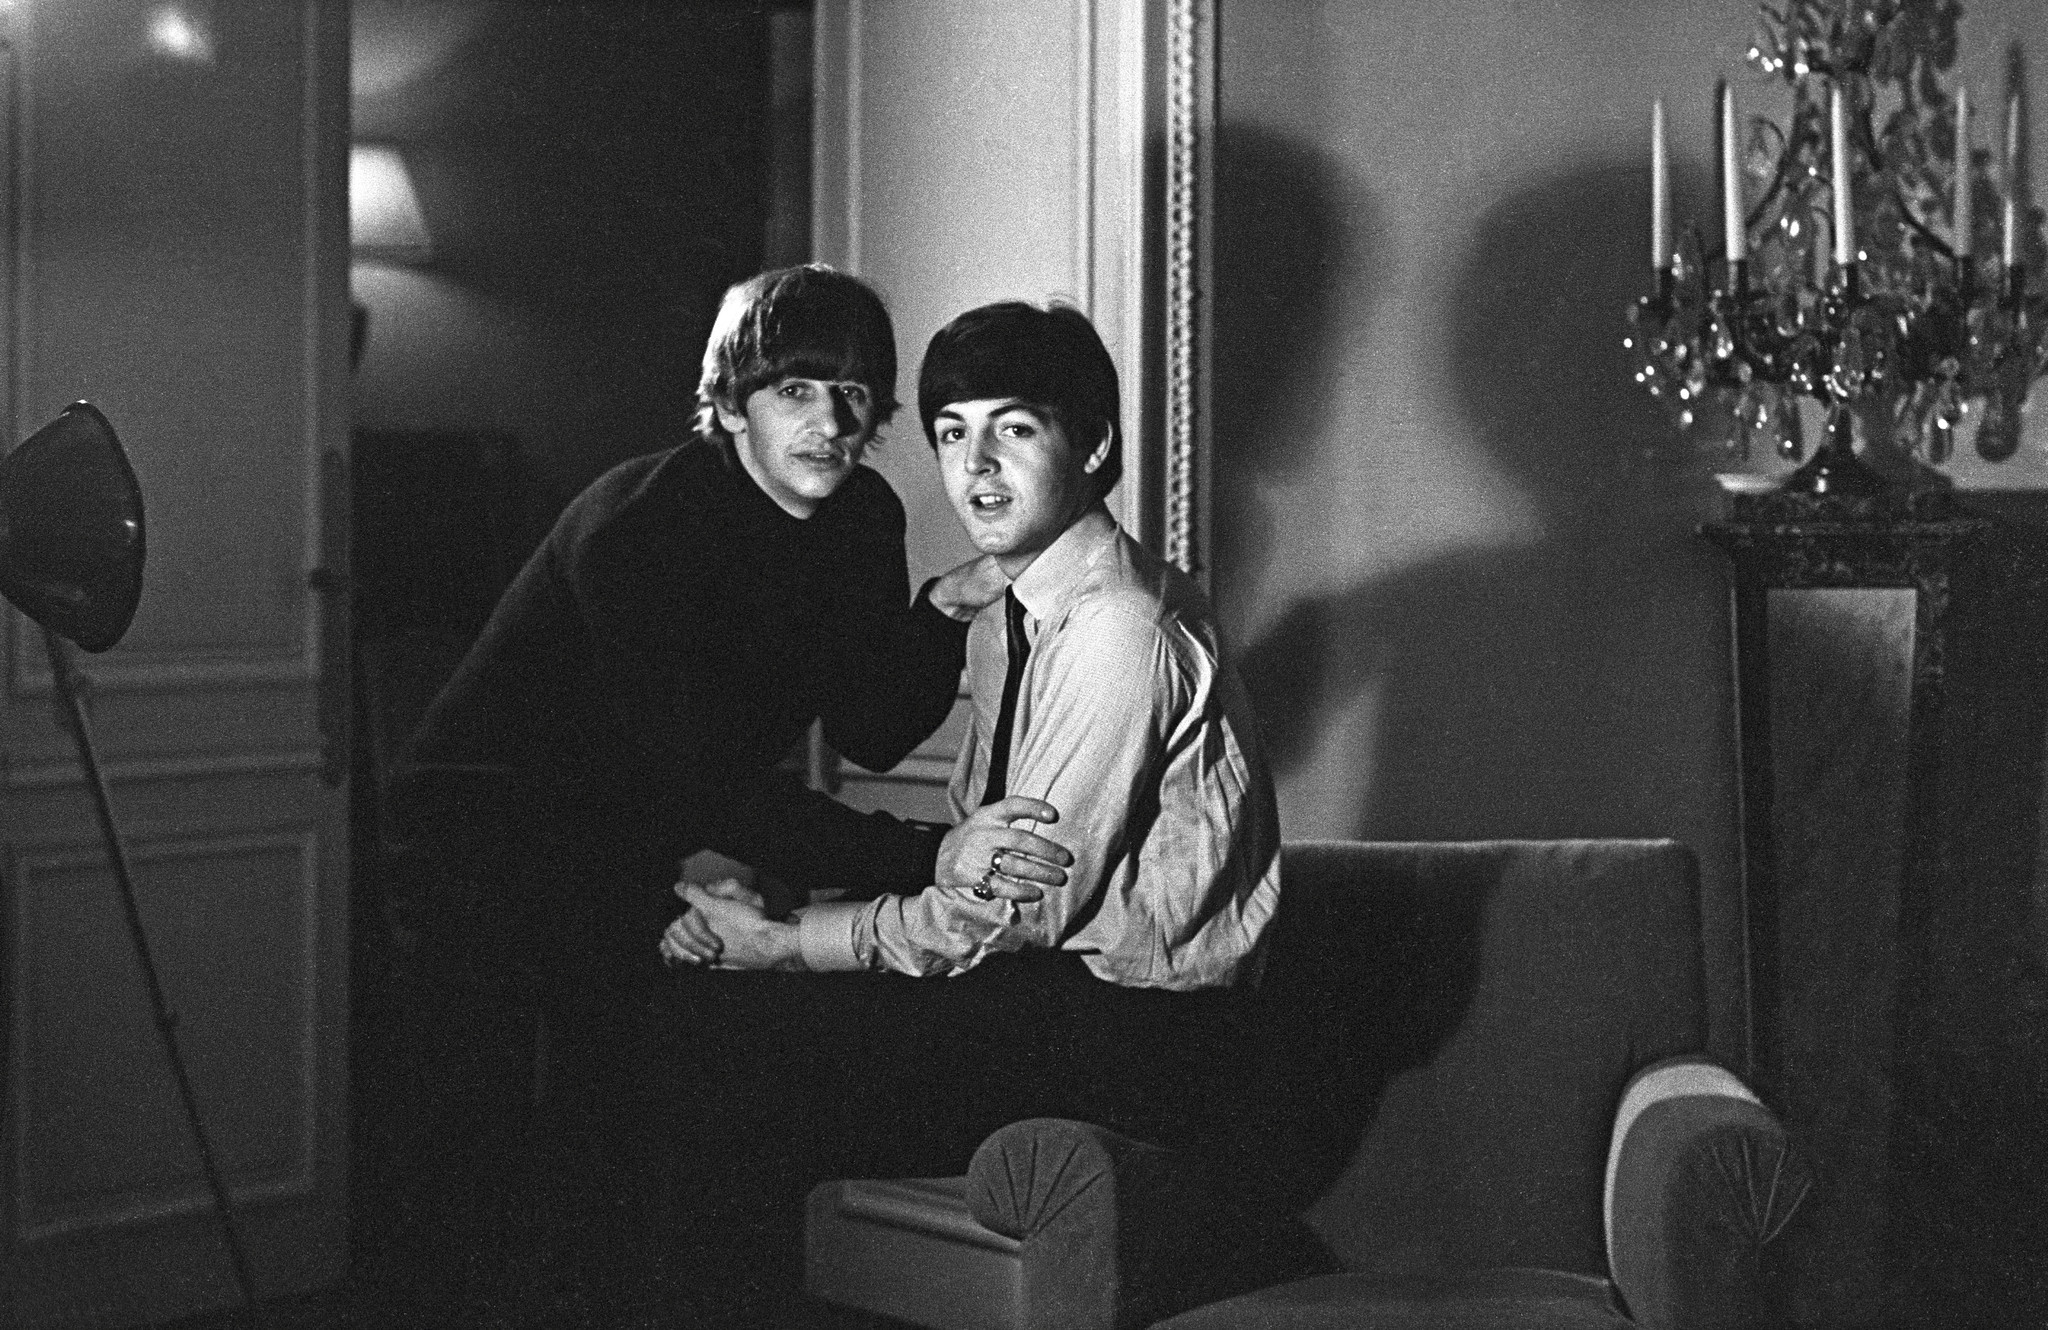 ringo starr 39 s five fab beatles moments from his book 39 photograph 39 los angeles times. Black Bedroom Furniture Sets. Home Design Ideas